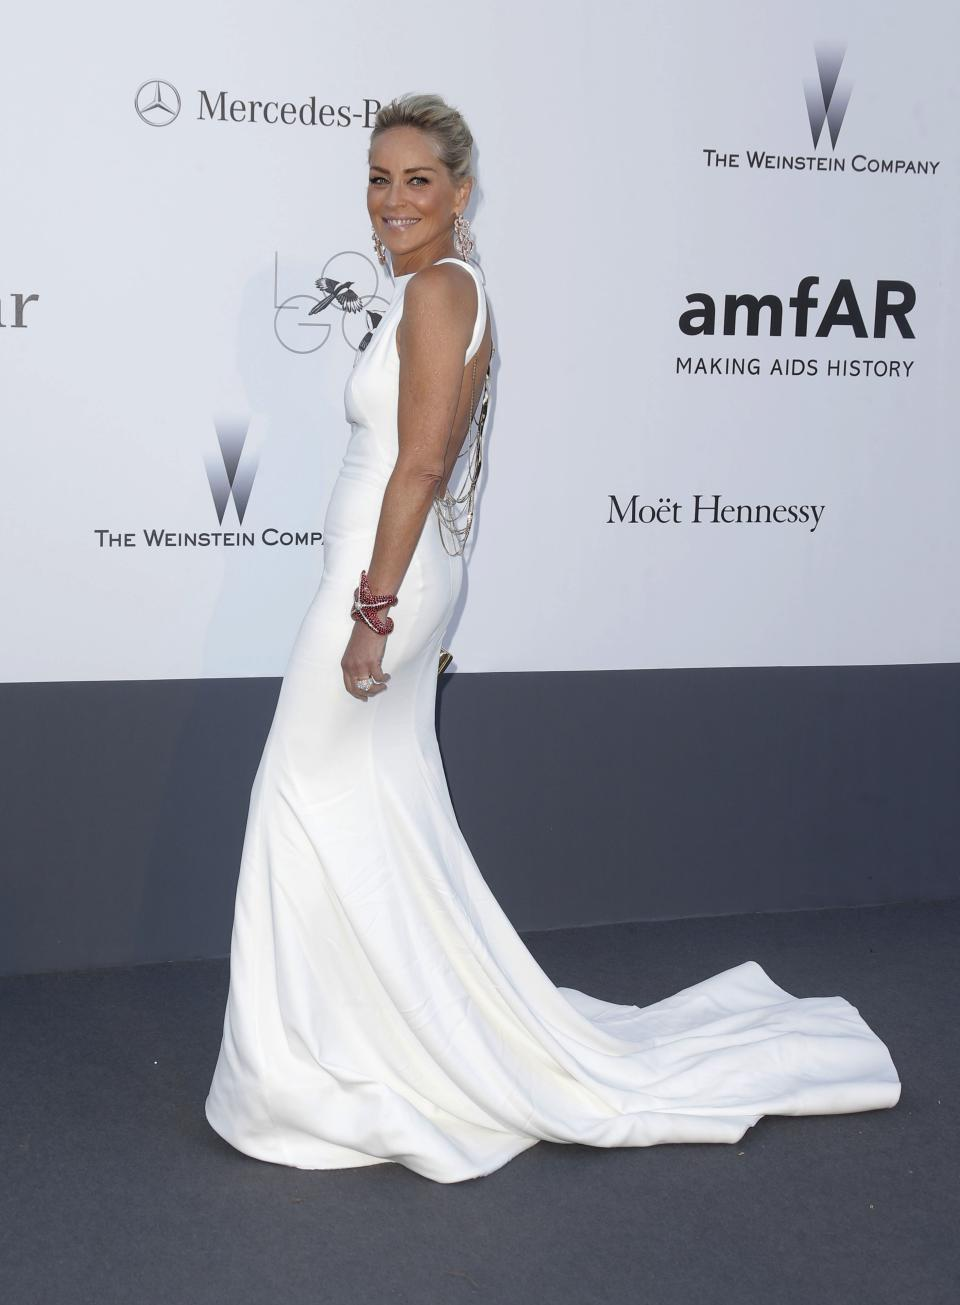 Actress Sharon Stone arrives at amfAR Cinema Against AIDS benefit at the Hotel du Cap-Eden-Roc, during the 66th international film festival, in Cap d'Antibes, southern France, Thursday, May 23, 2013. (Photo by Todd Williamson/Invision/AP)